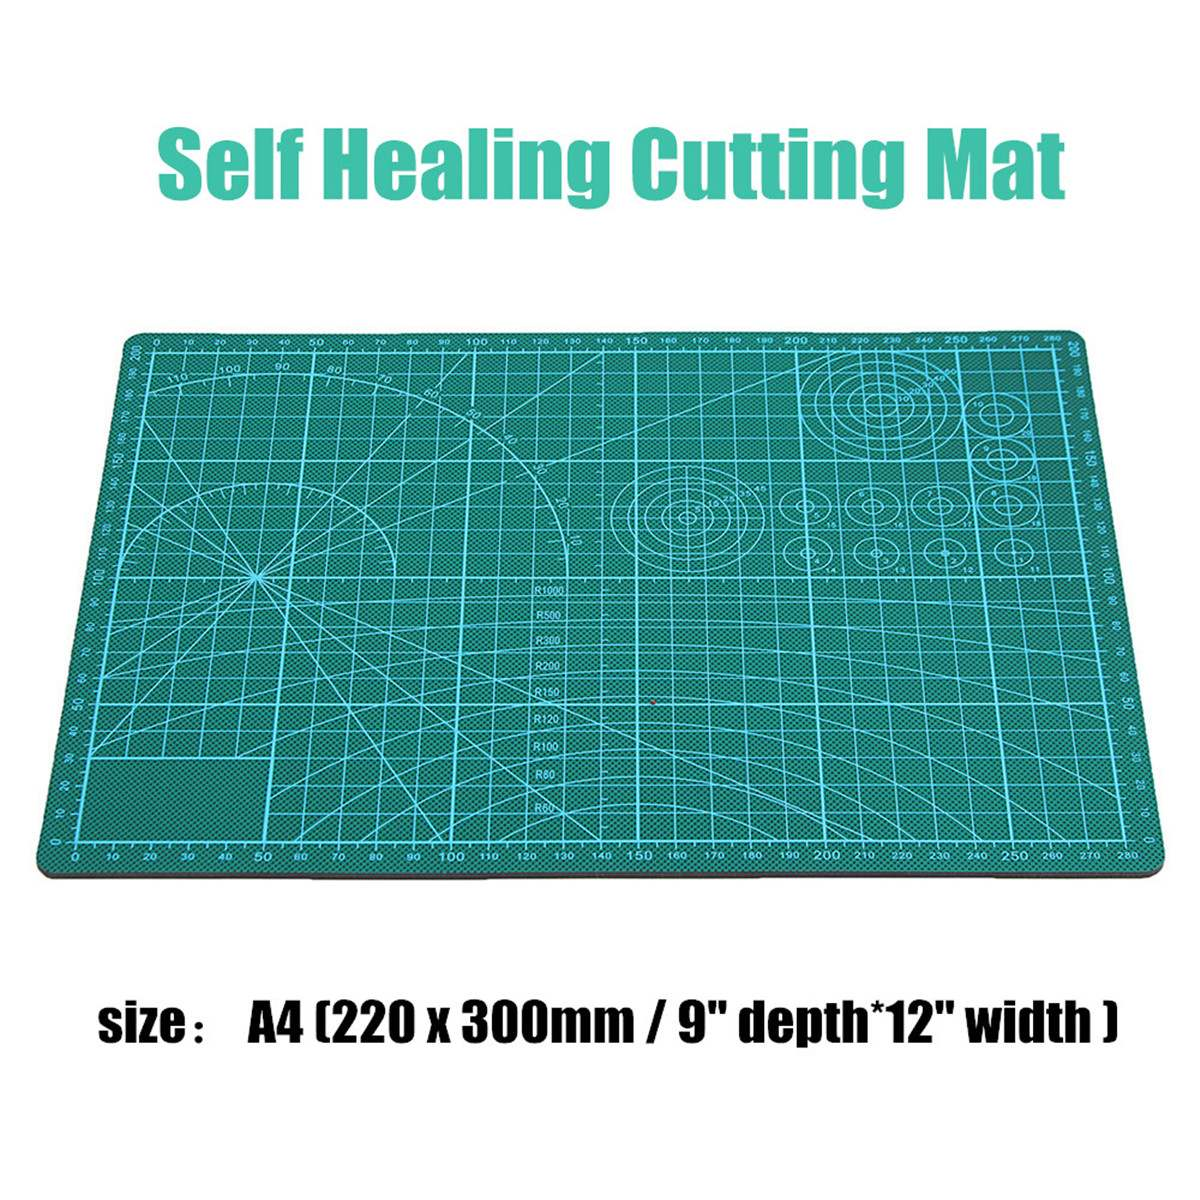 A2/A3/A4 Grid Lines Cutting Craft Mat Board Self Healing Non Slip Printed Scale Plate Knife Quality Cutting